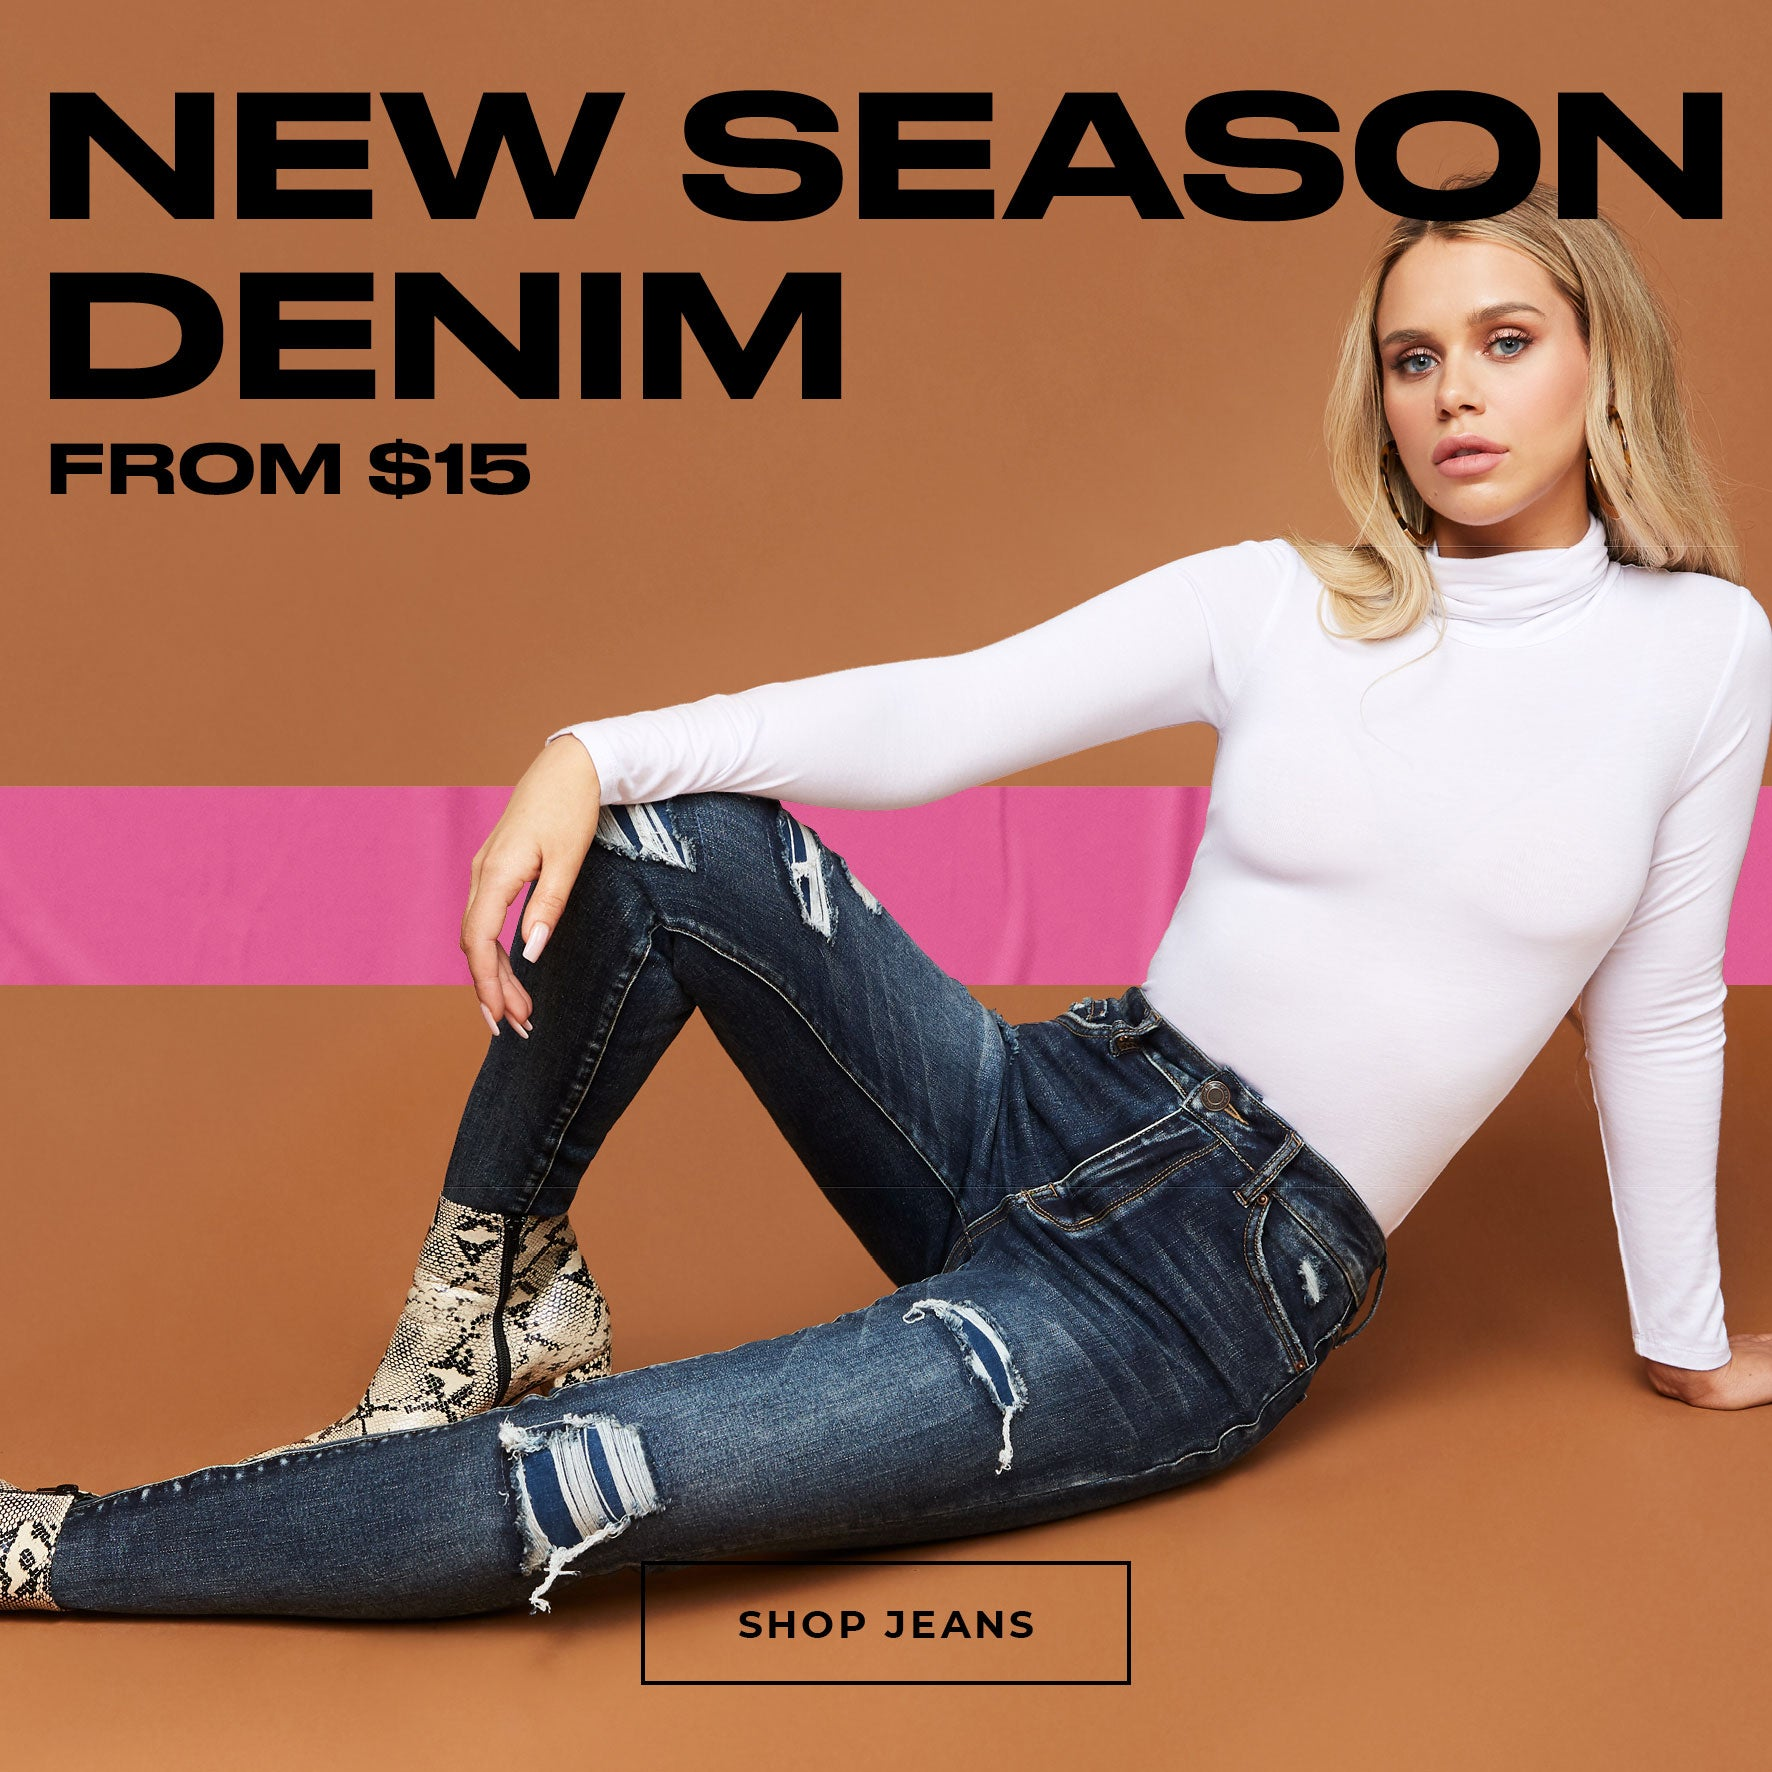 Charlotte Russe | New Season Denim from $15 - Shop Jeans